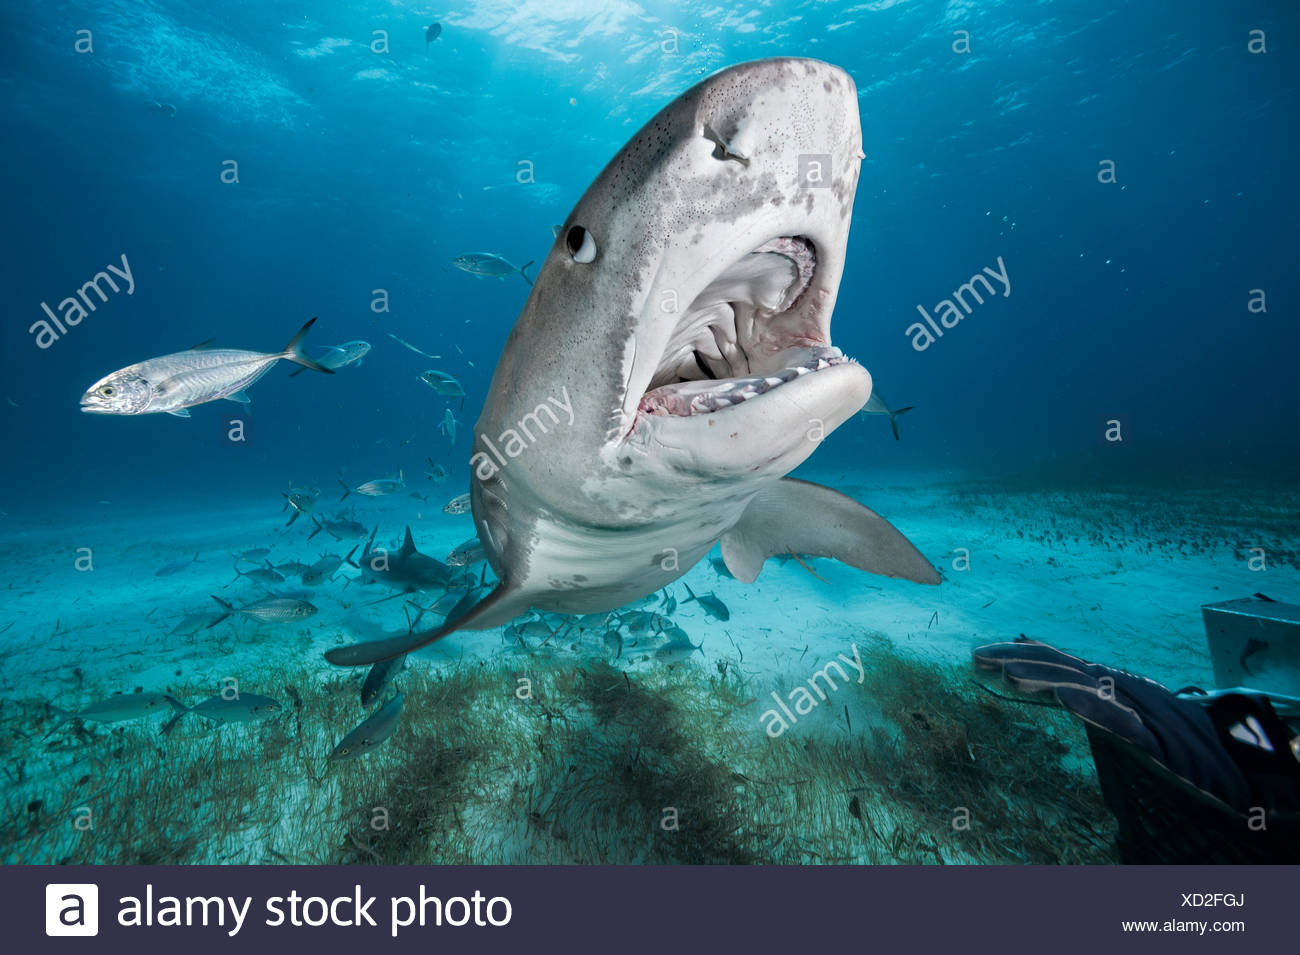 A tiger shark at Tiger Beach in the Bahamas. - Stock Image